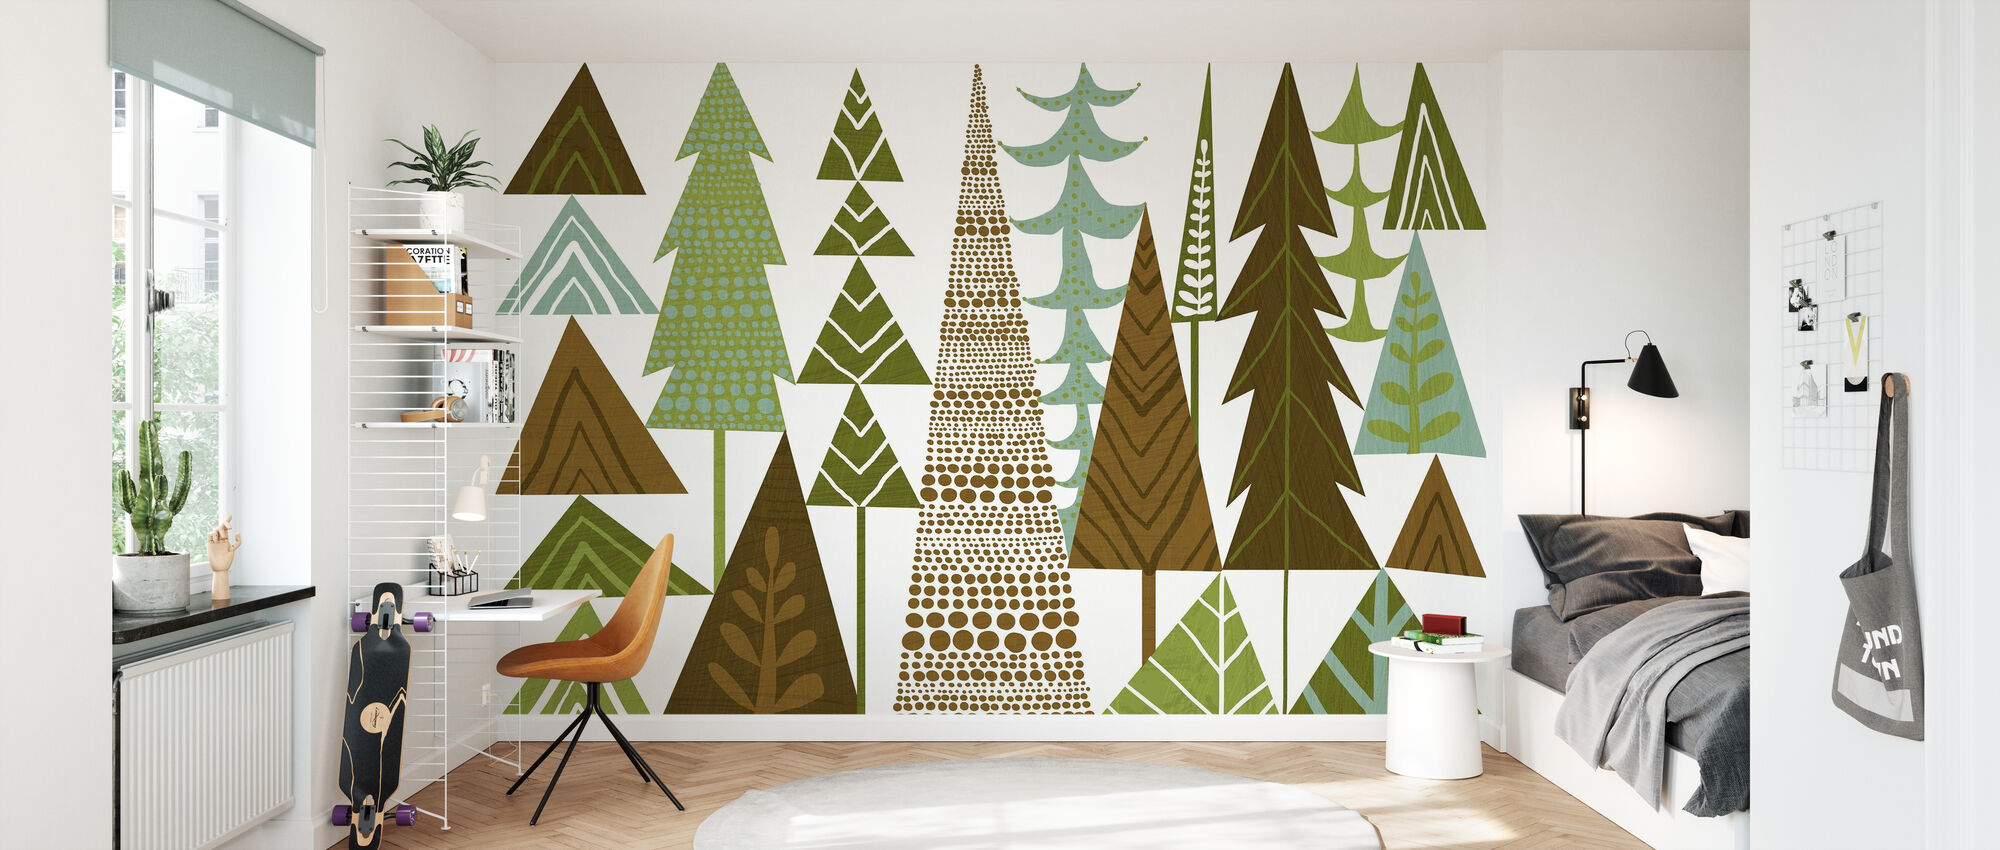 Forest Folklore Green Trees - Wallpaper - Kids Room